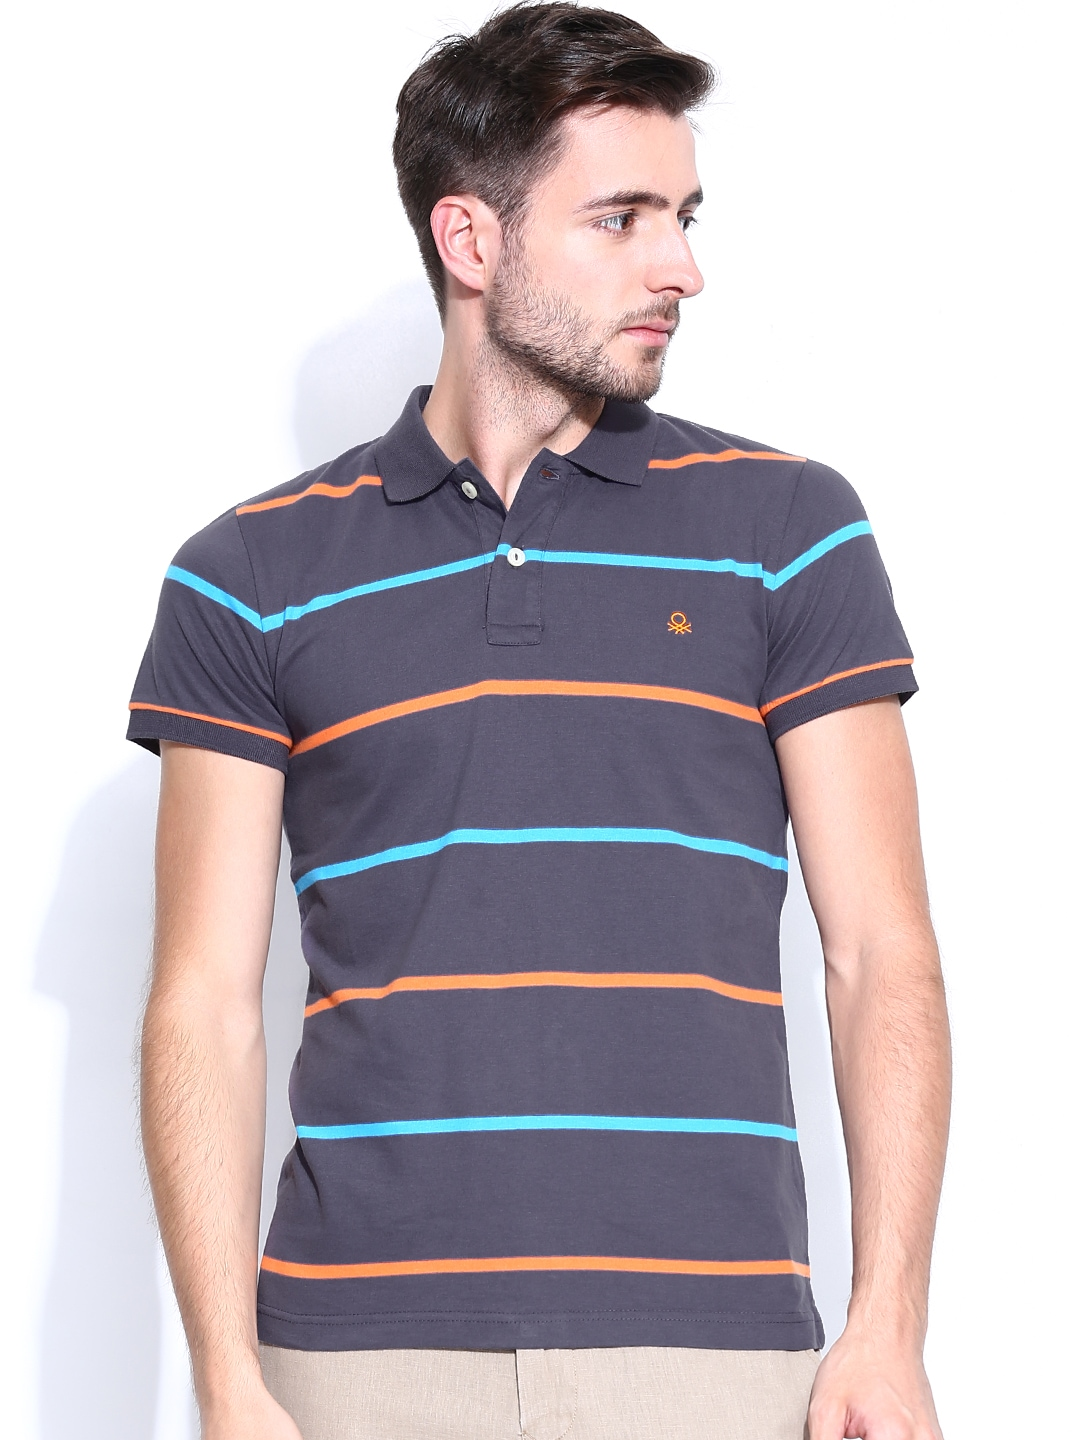 Myntra united colors of benetton men purple striped polo t for Purple and black striped t shirt